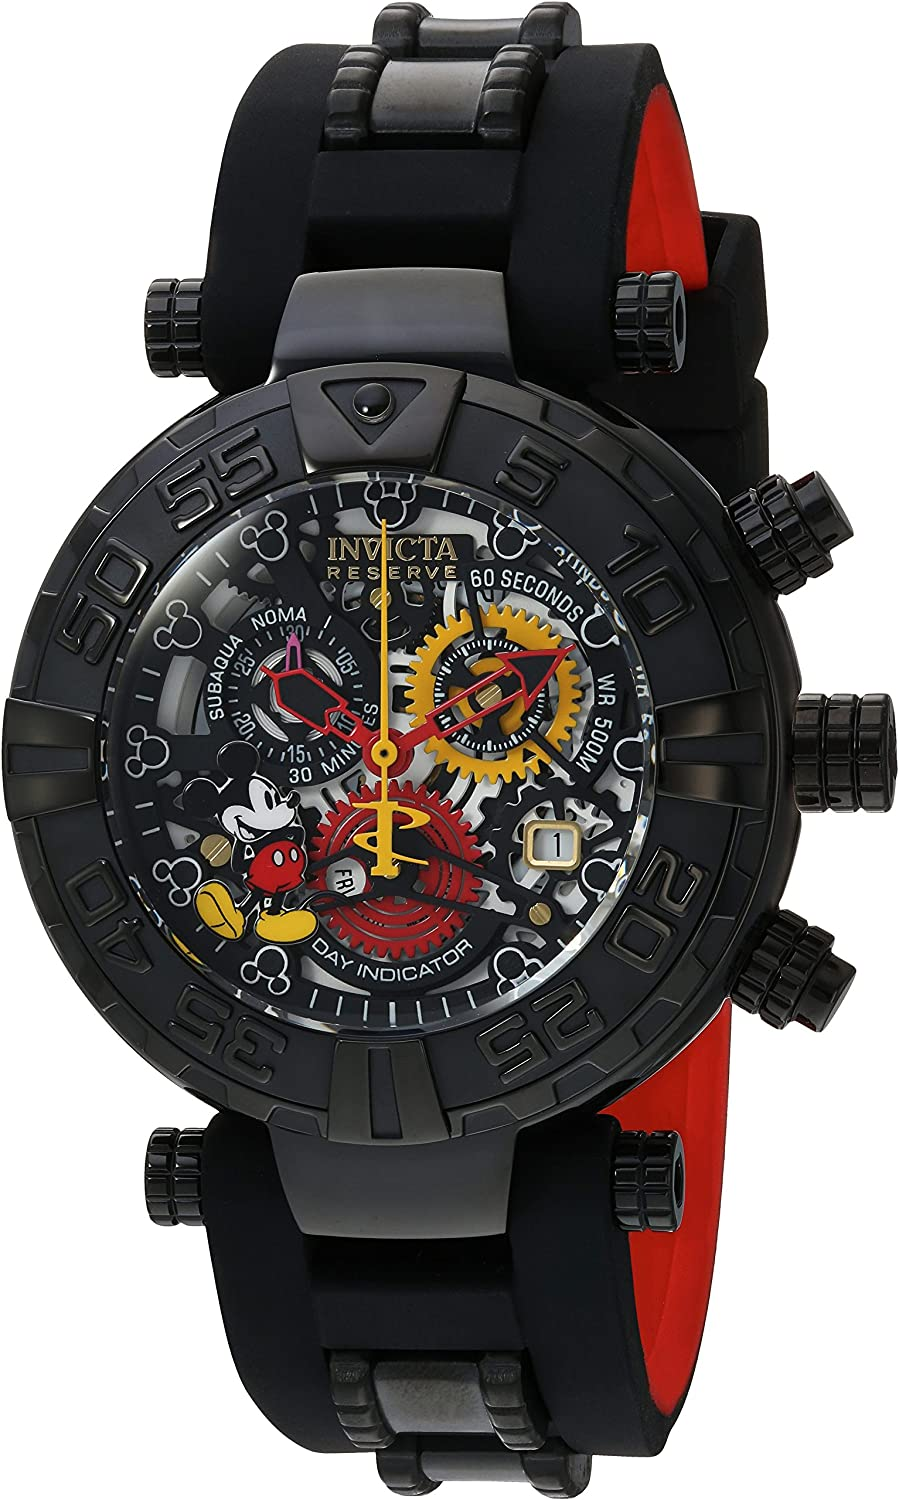 Invicta Men s Disney Limited Edition Stainless Steel Swiss-Quartz Watch with Silicone Strap, Black, 12 Model 22735